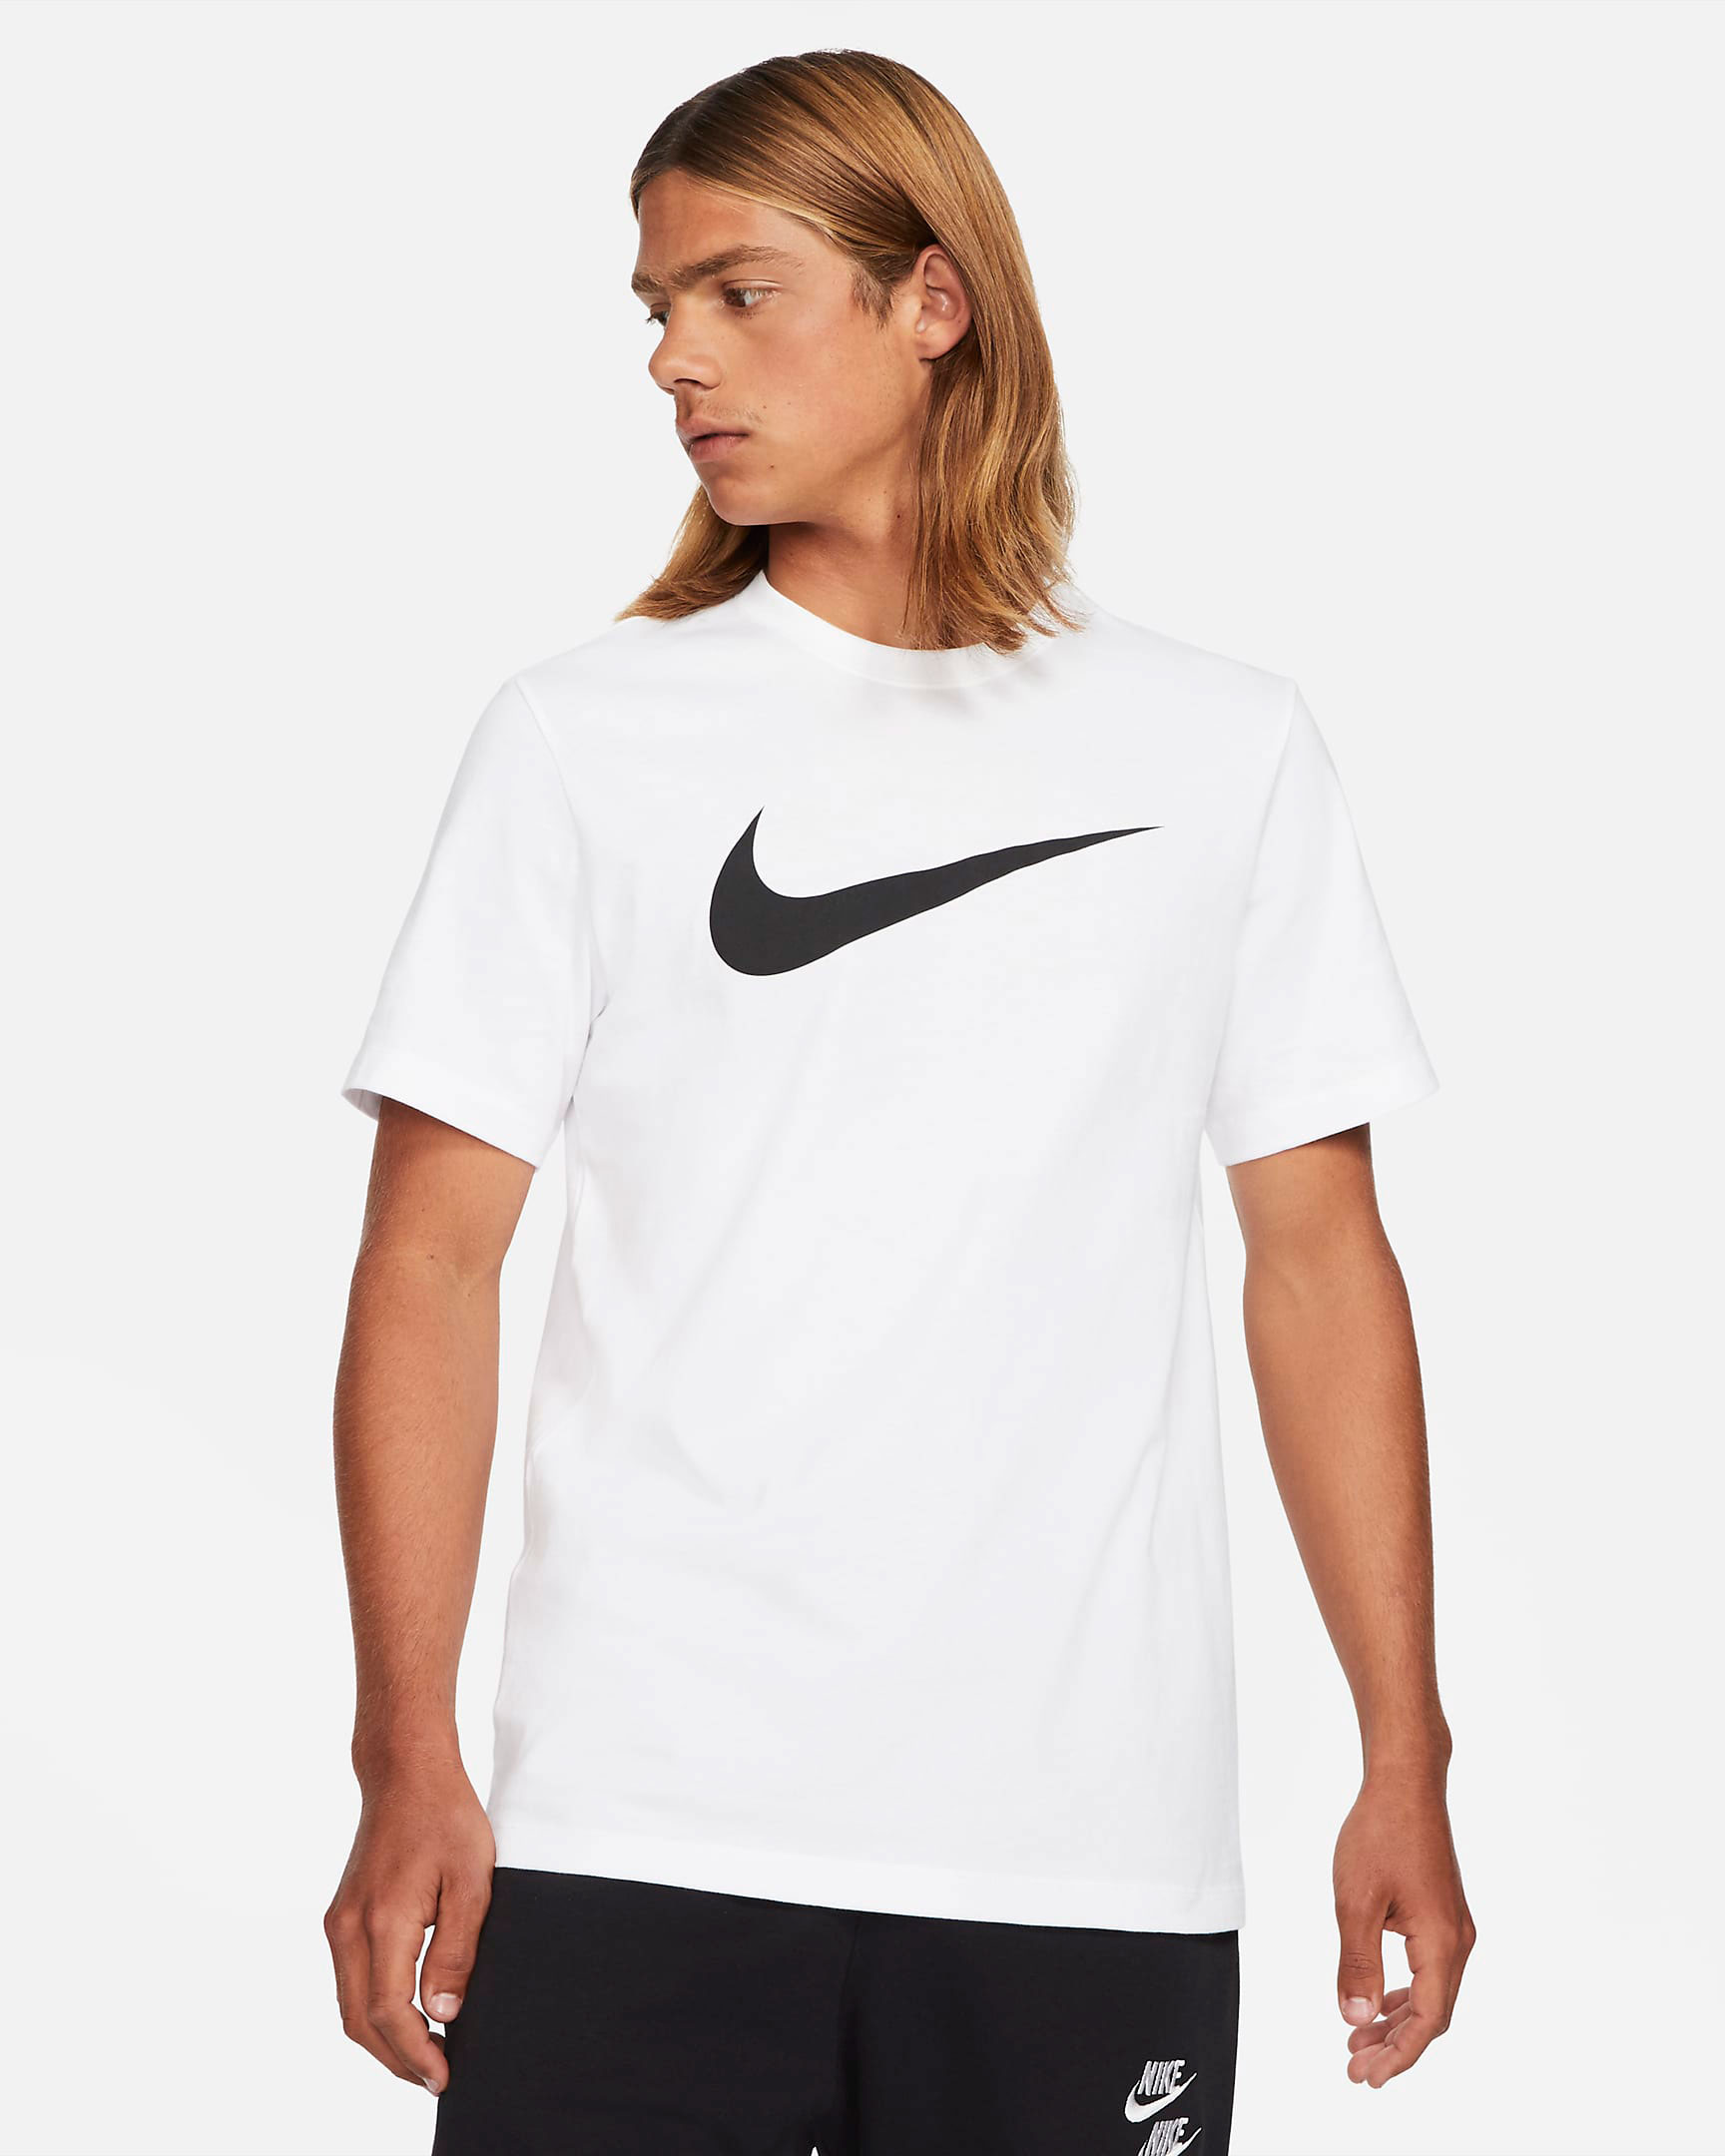 nike-dunk-low-white-black-t-shirt